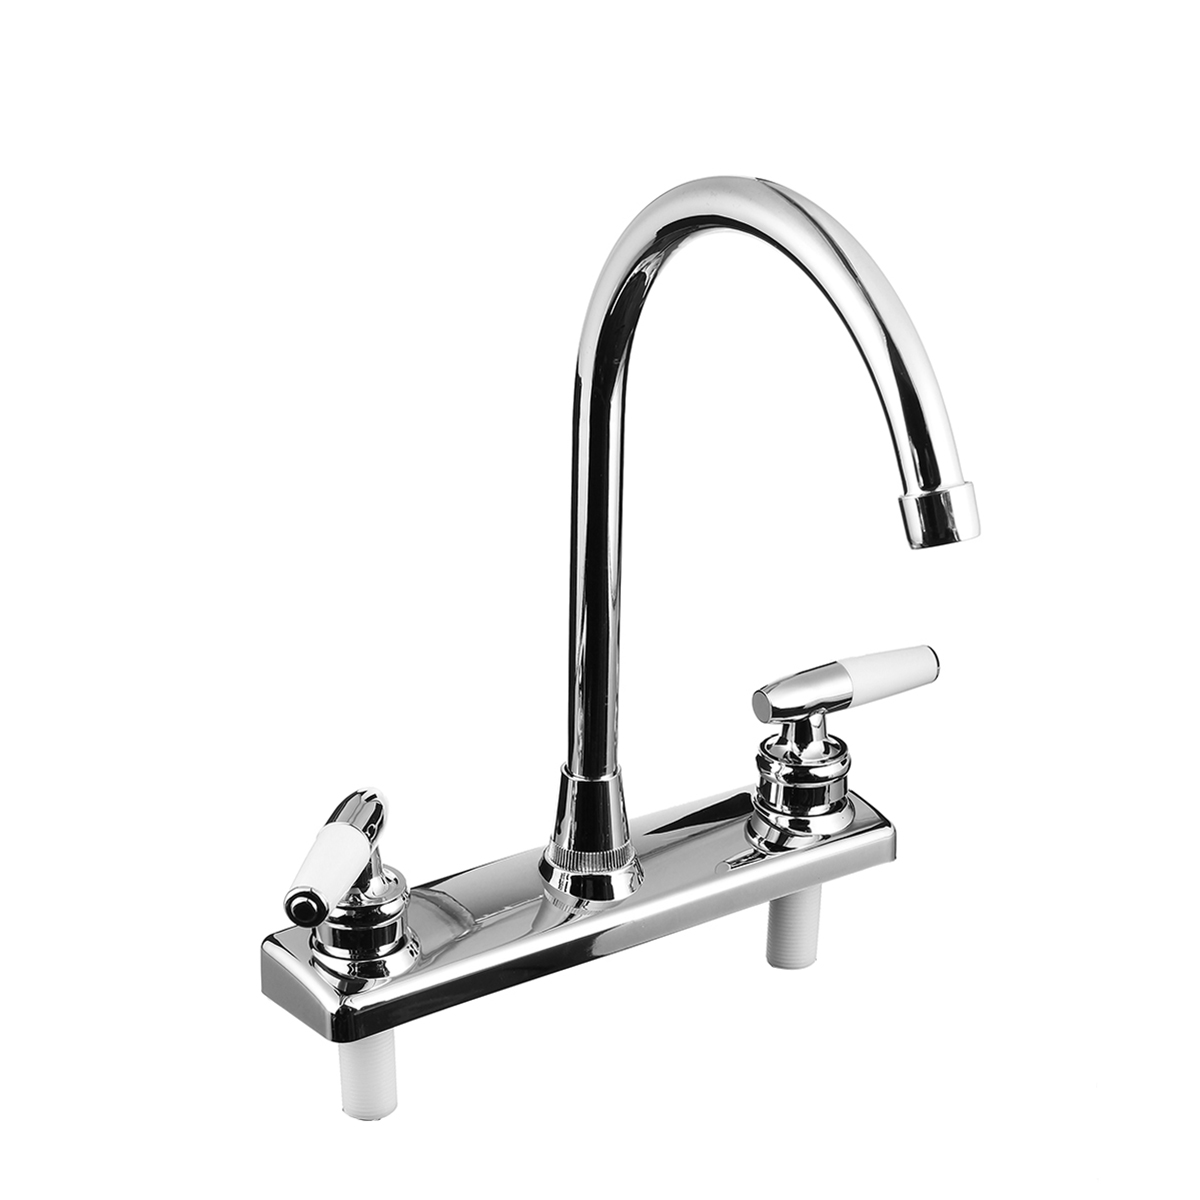 Double Dual Handle Spout Hot Cold Basin Sink Mixer Water